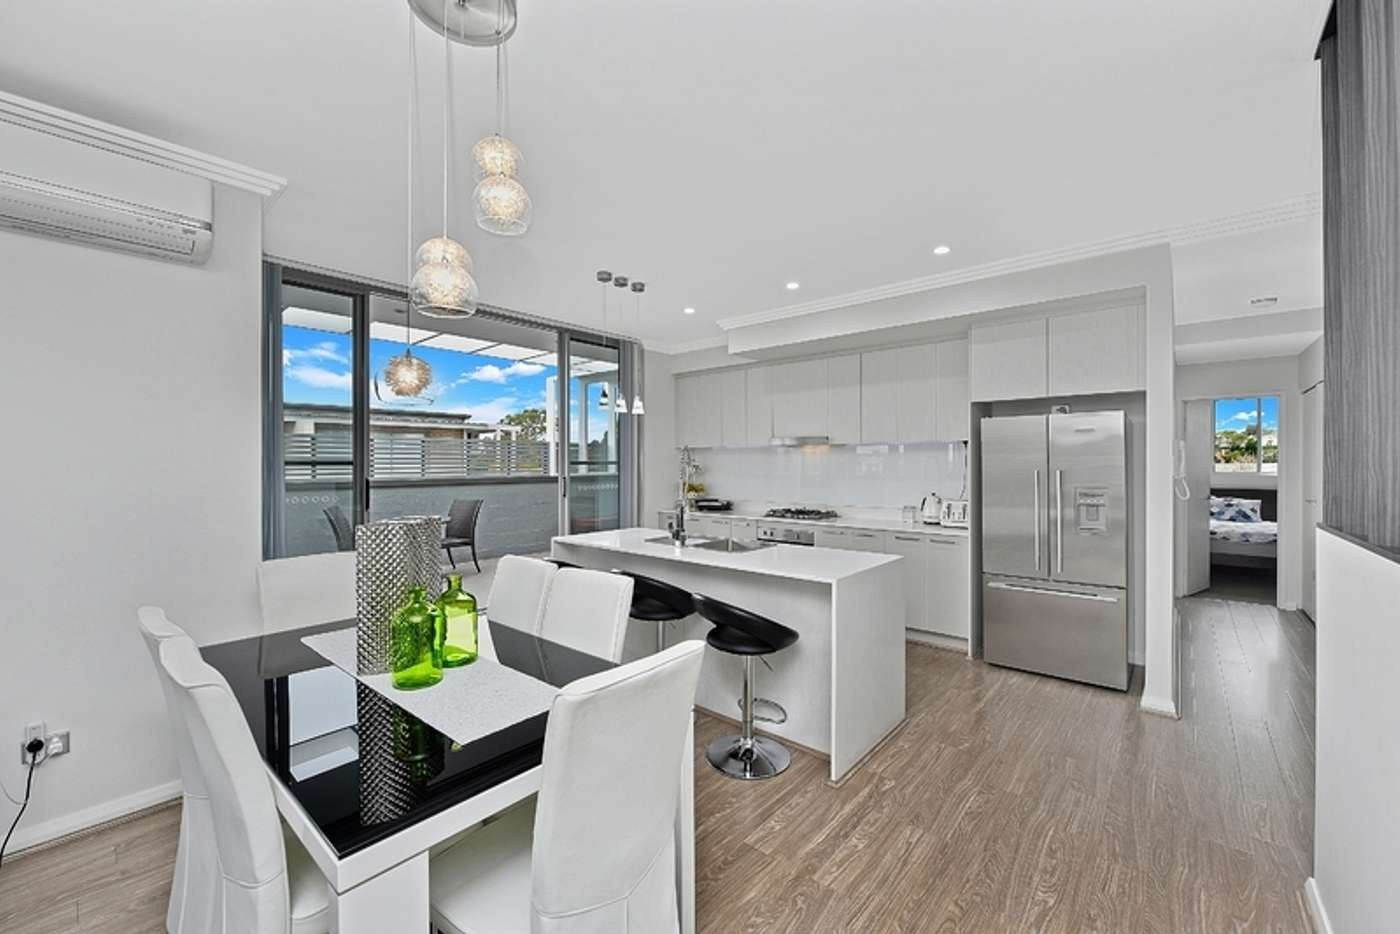 Fifth view of Homely apartment listing, 61/79 Beaconsfield Street, Silverwater NSW 2128